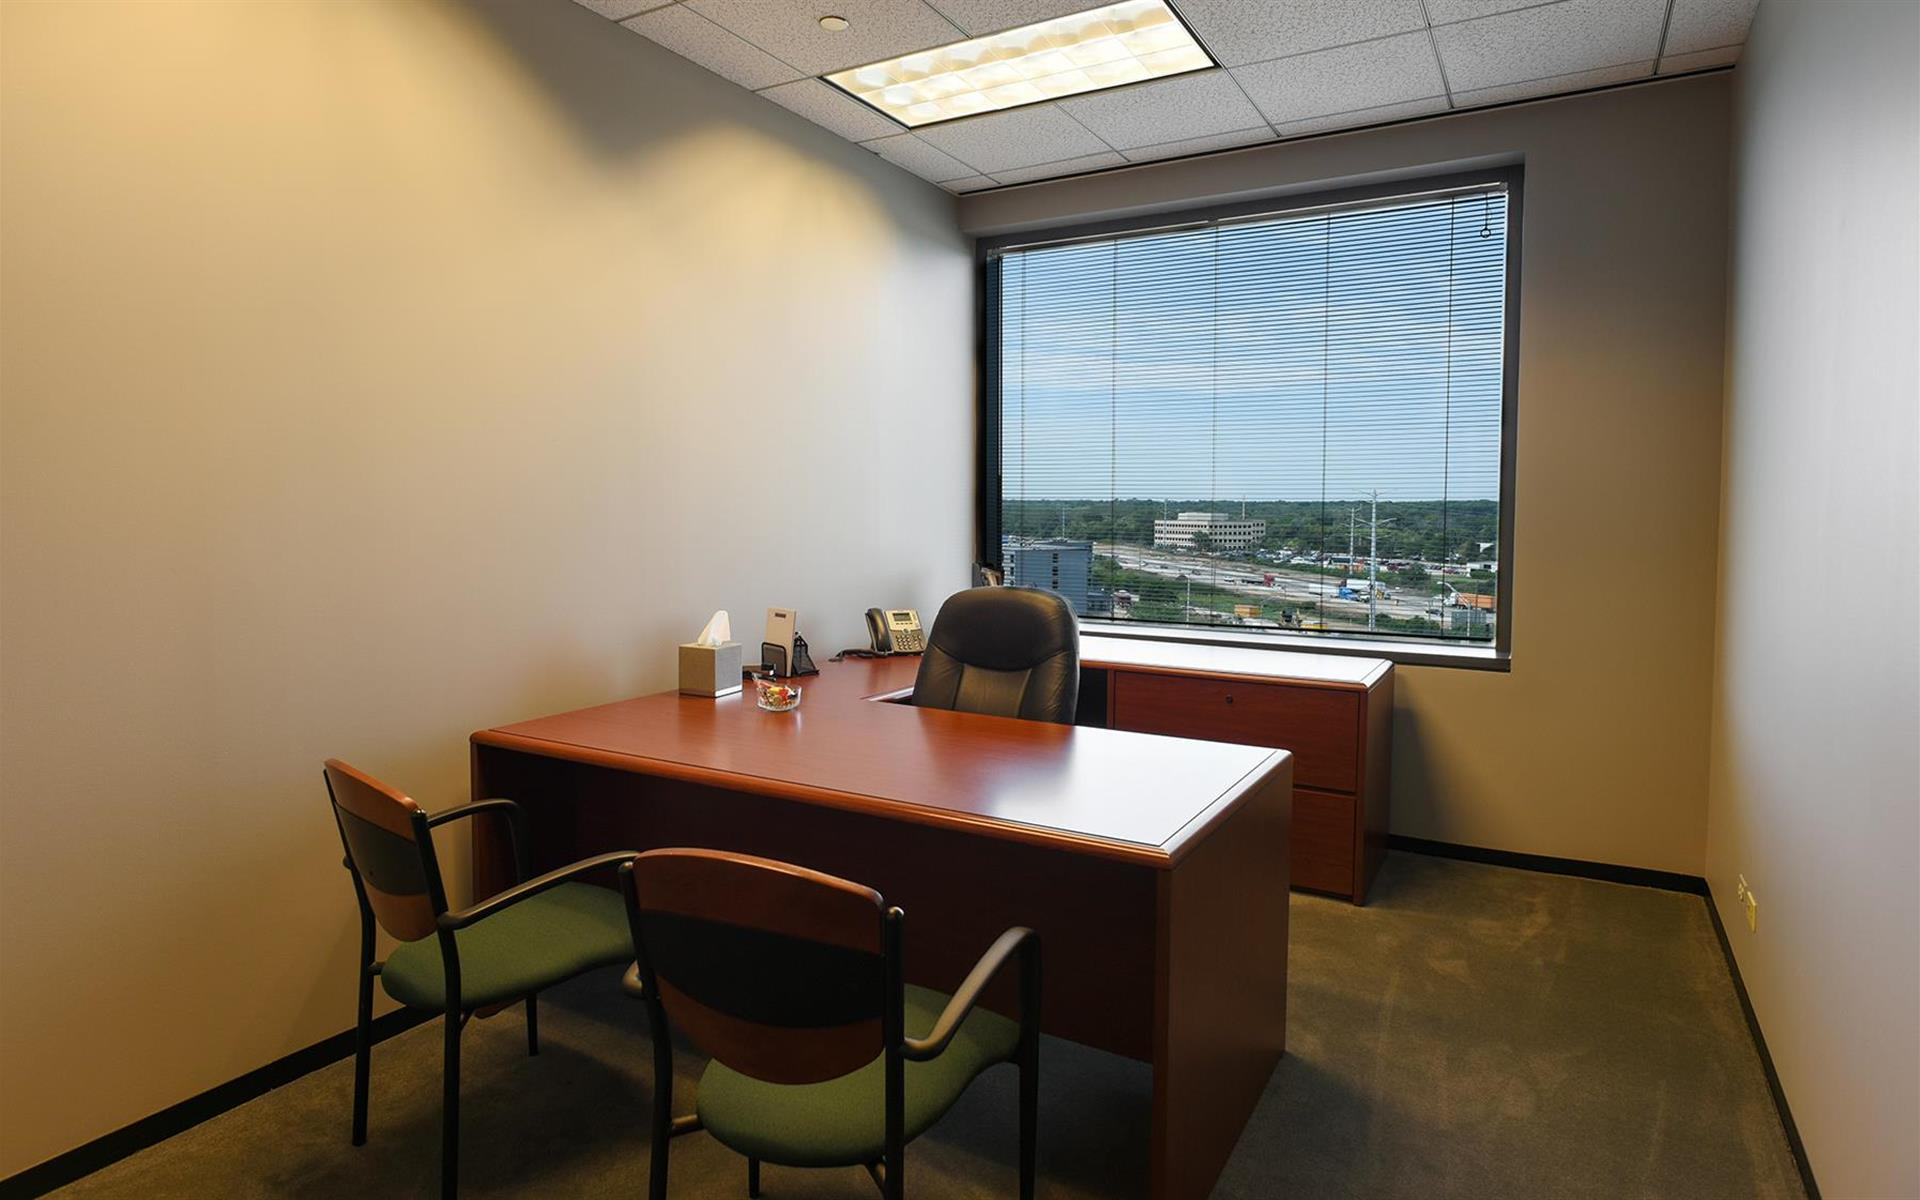 My Office Suite - Chatham - Day Office Suite 801